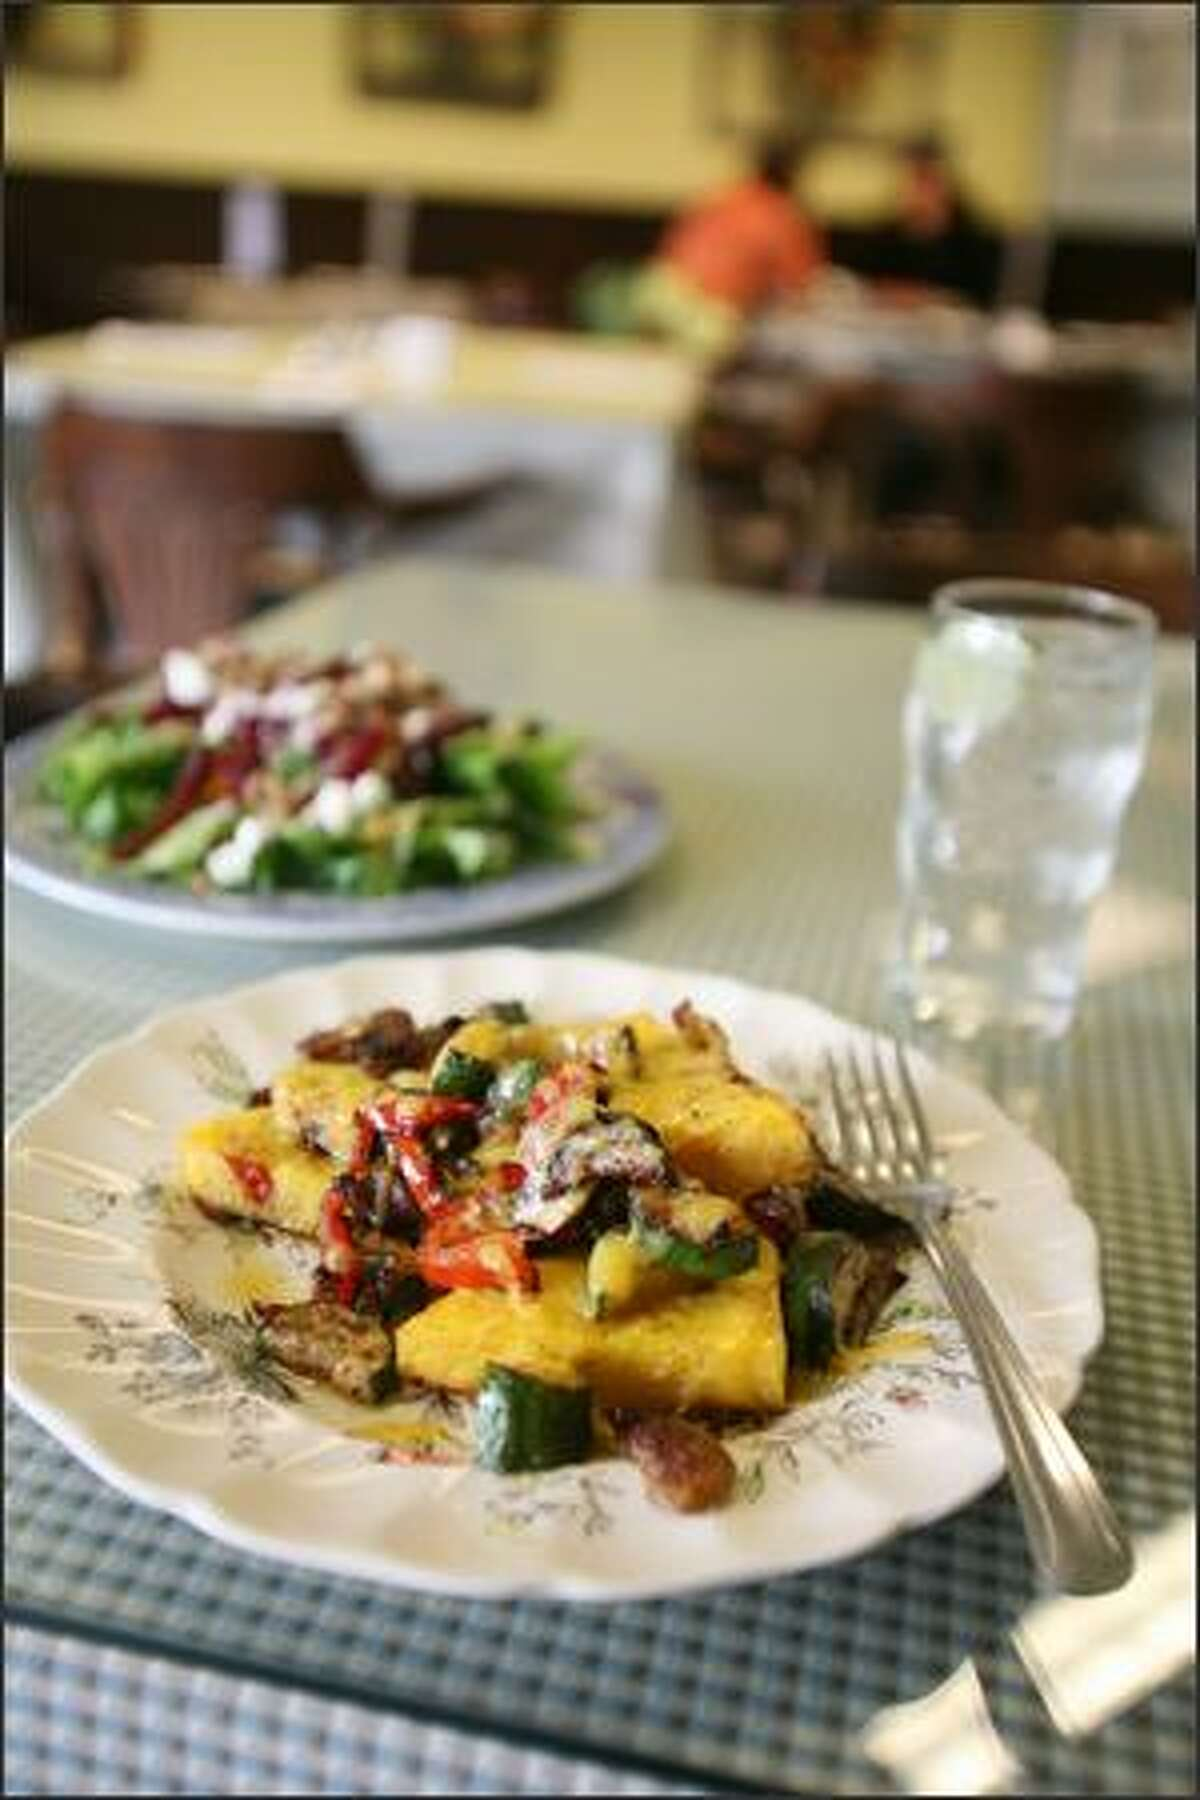 Owner Patty Carow uses overstock from her catering business to enhance her lunch menu, like polenta with roasted vegetables and a beet salad with chevre.